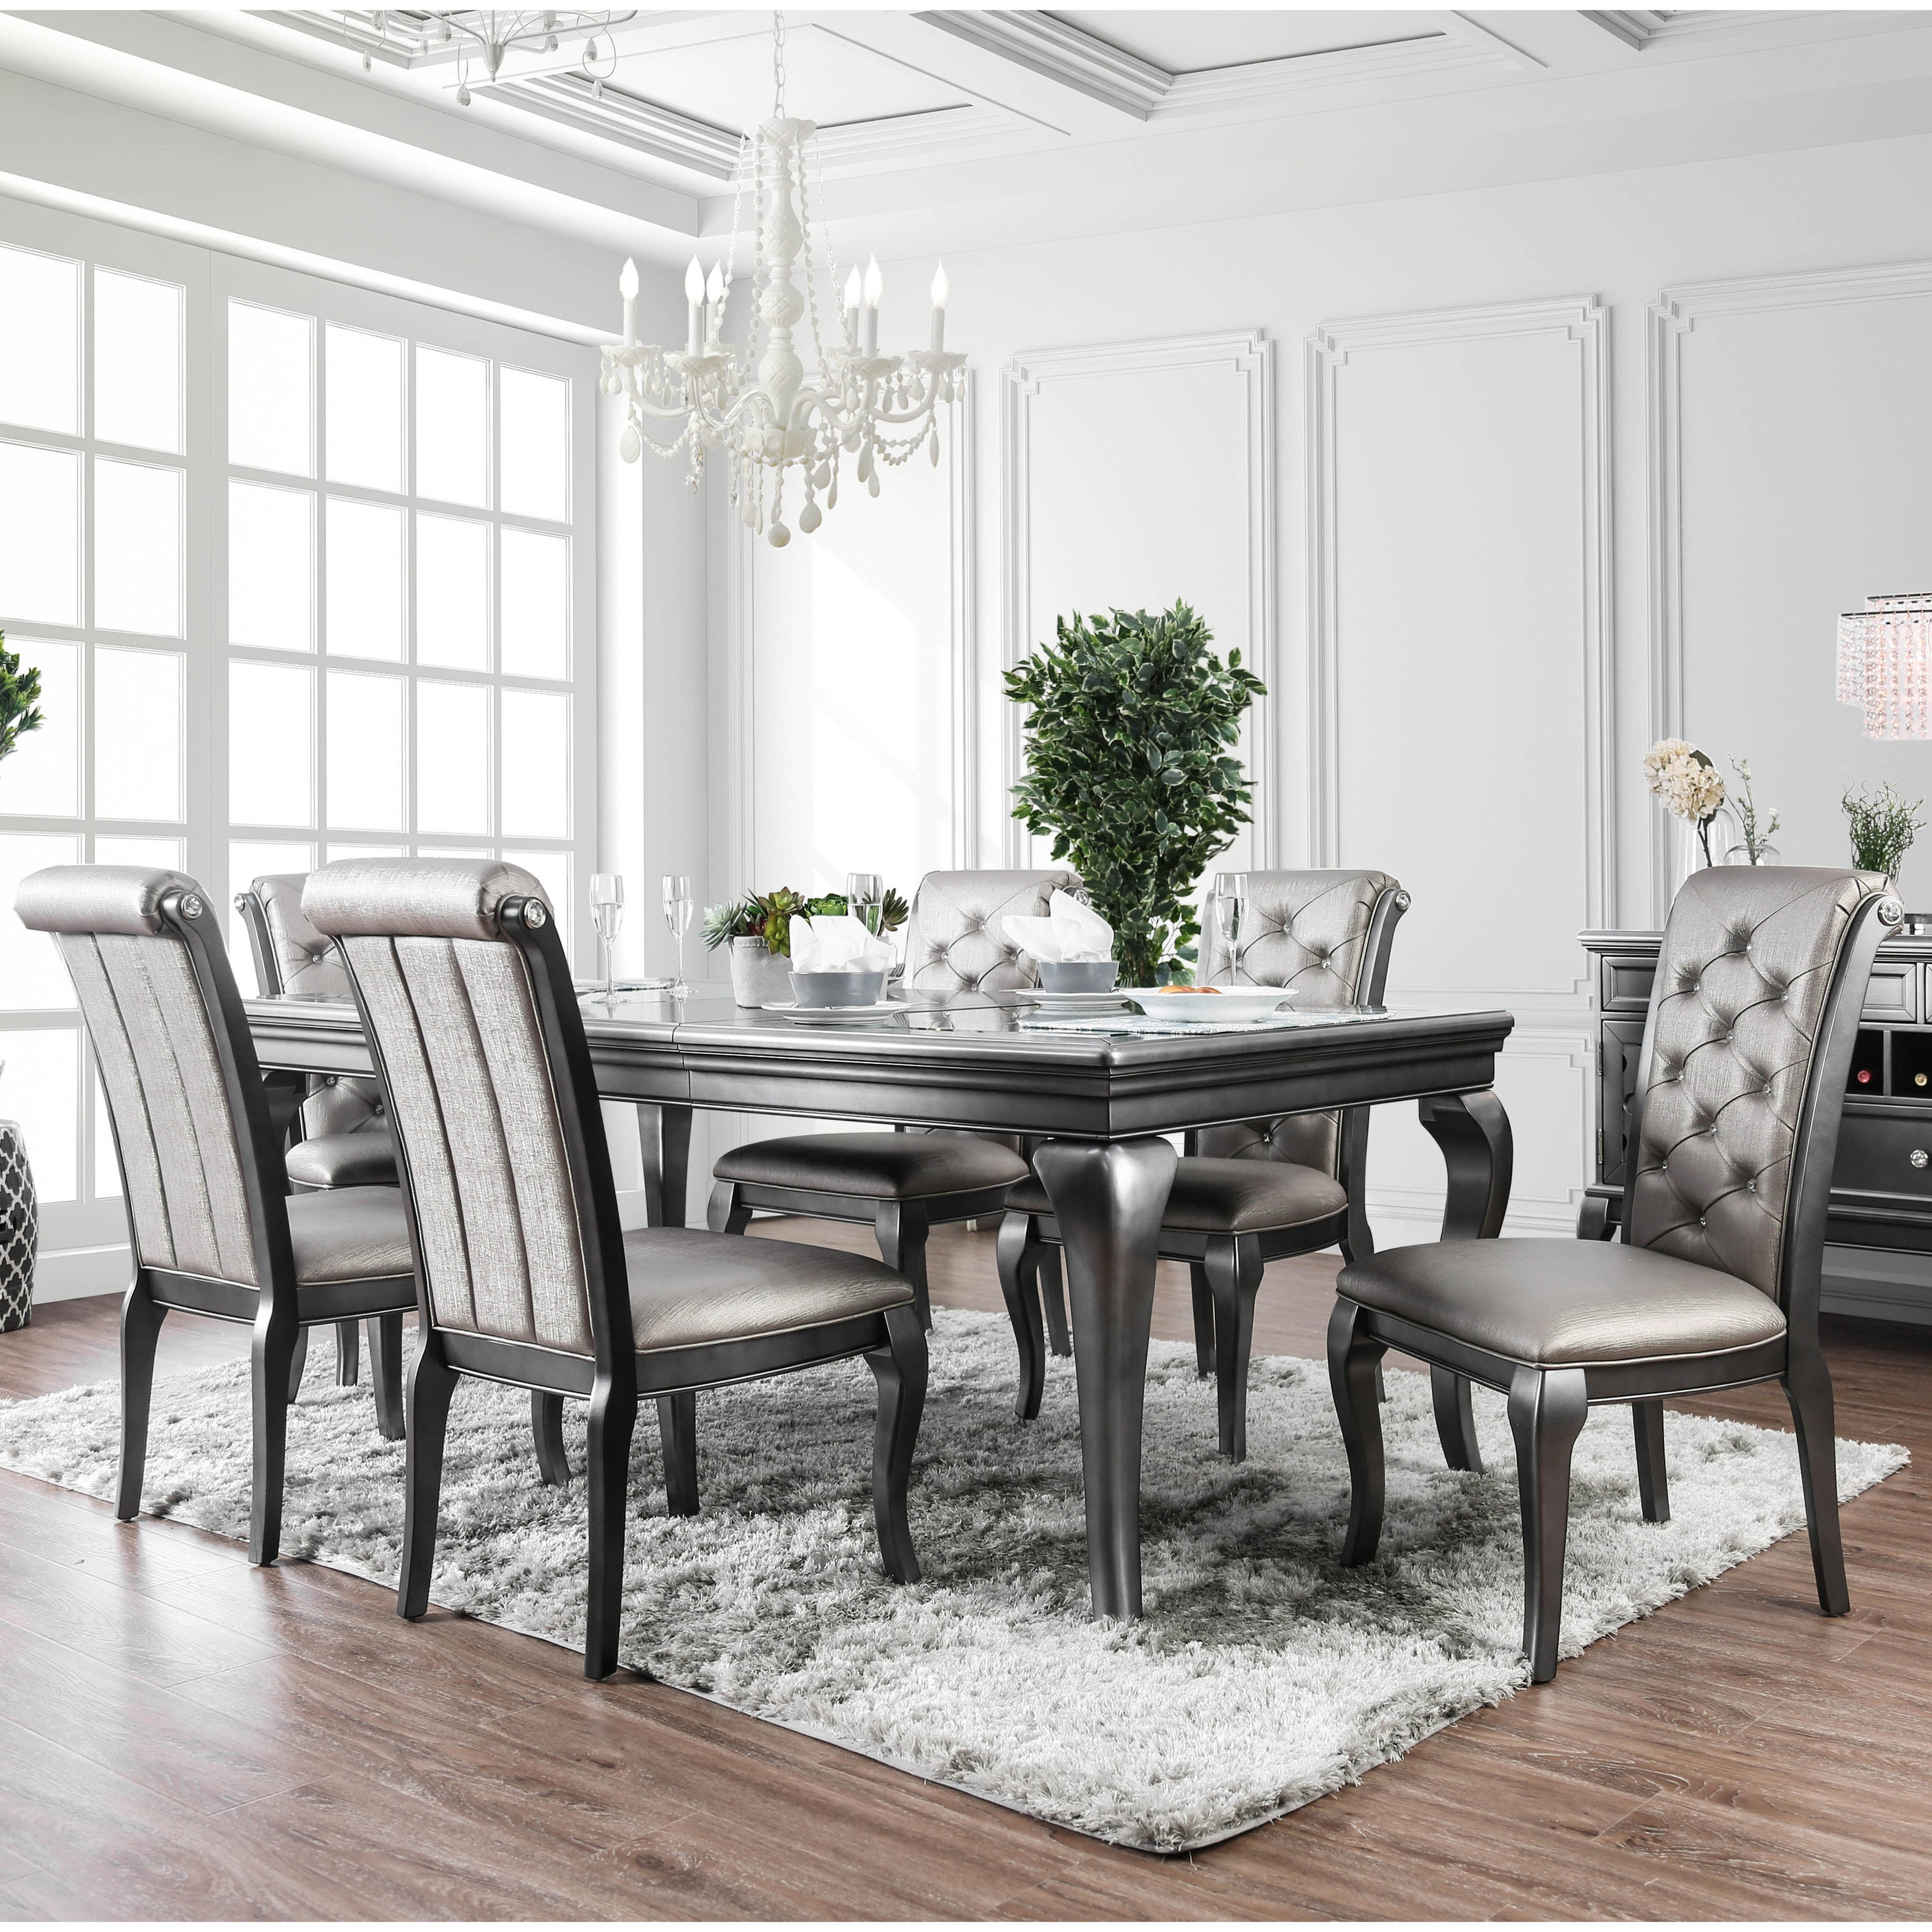 Furniture of America Mora Glam Silver Solid Wood 7-piece Dining Set